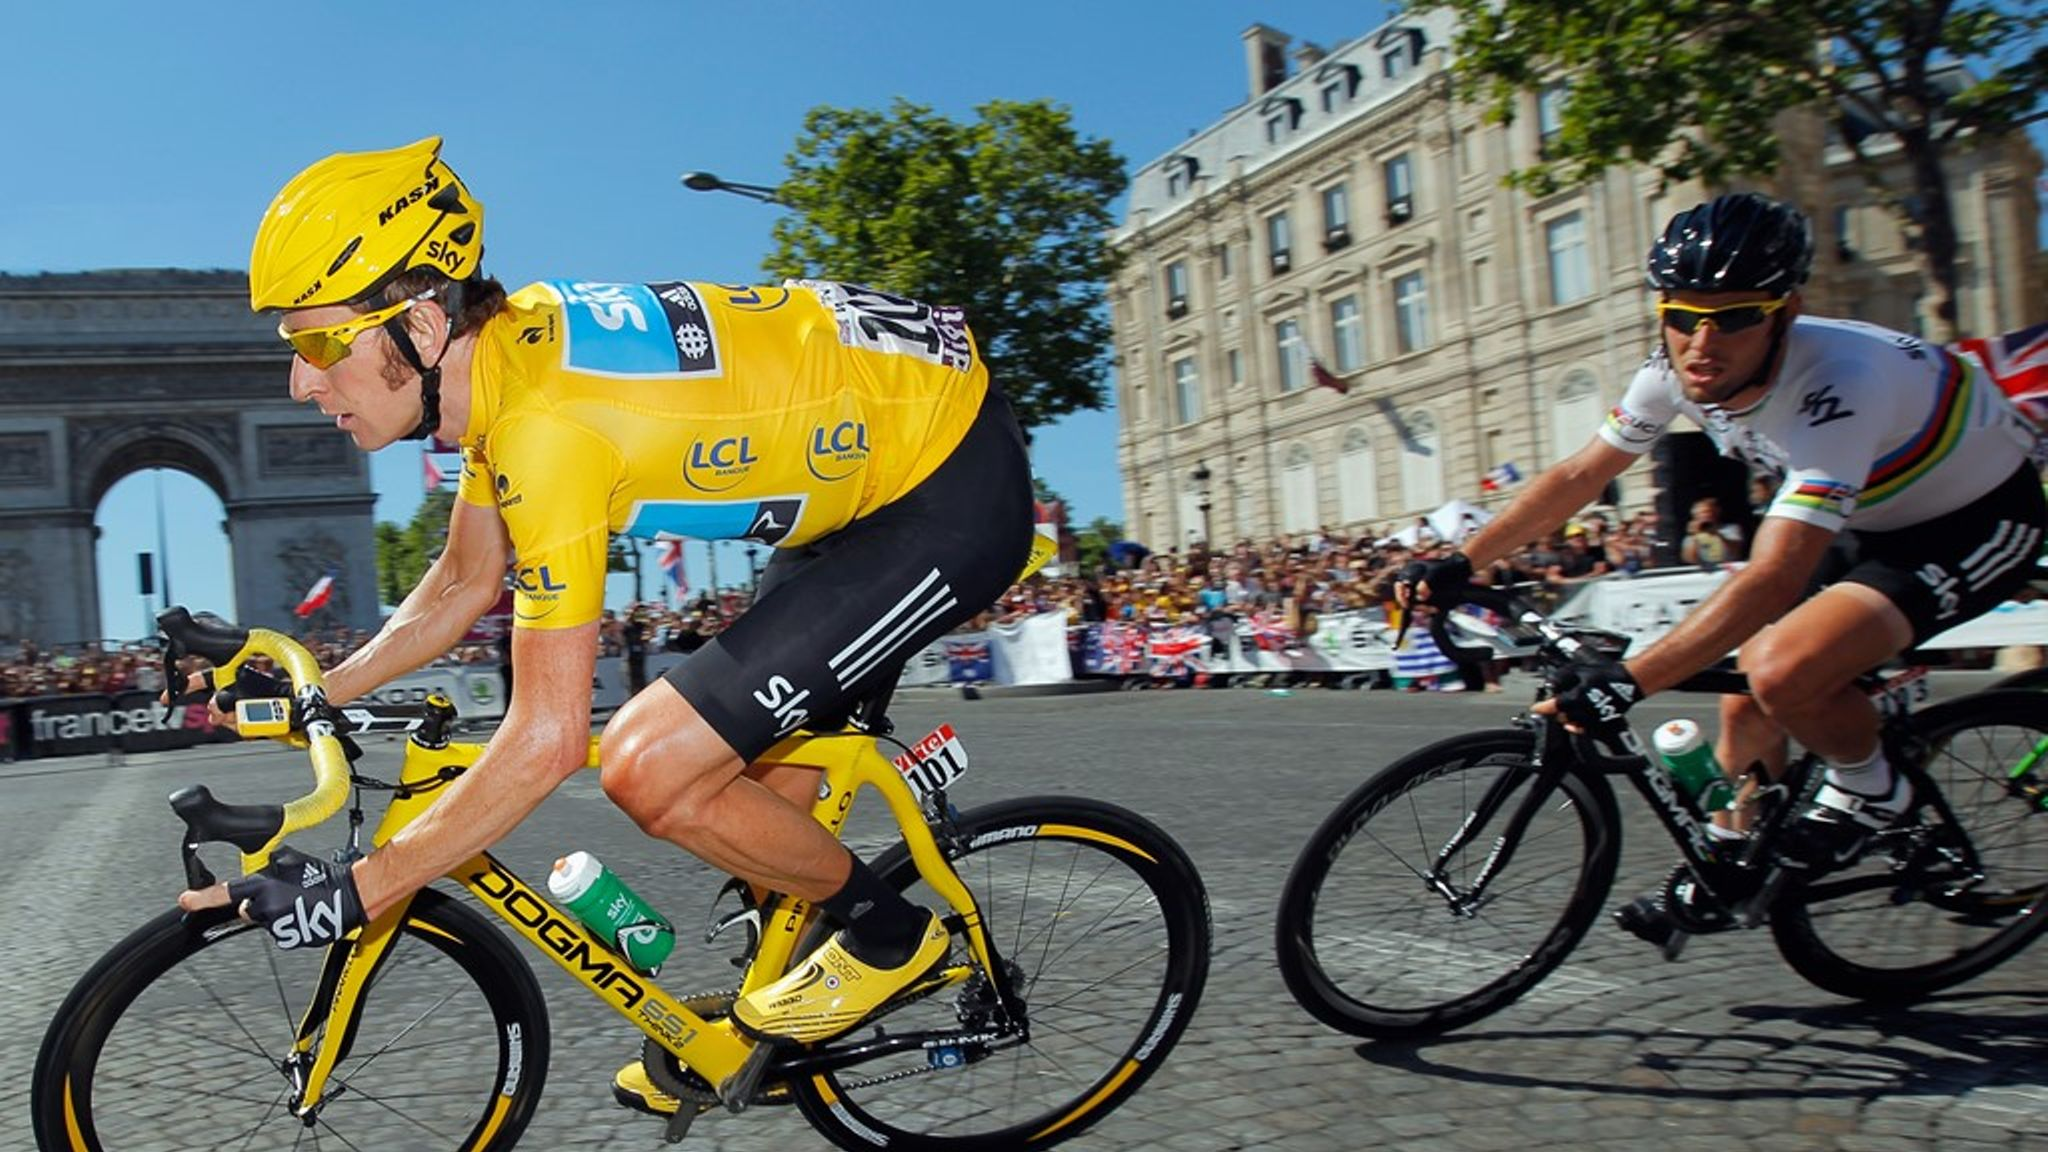 The Most Memorable Cycling Moments Of The 2010s